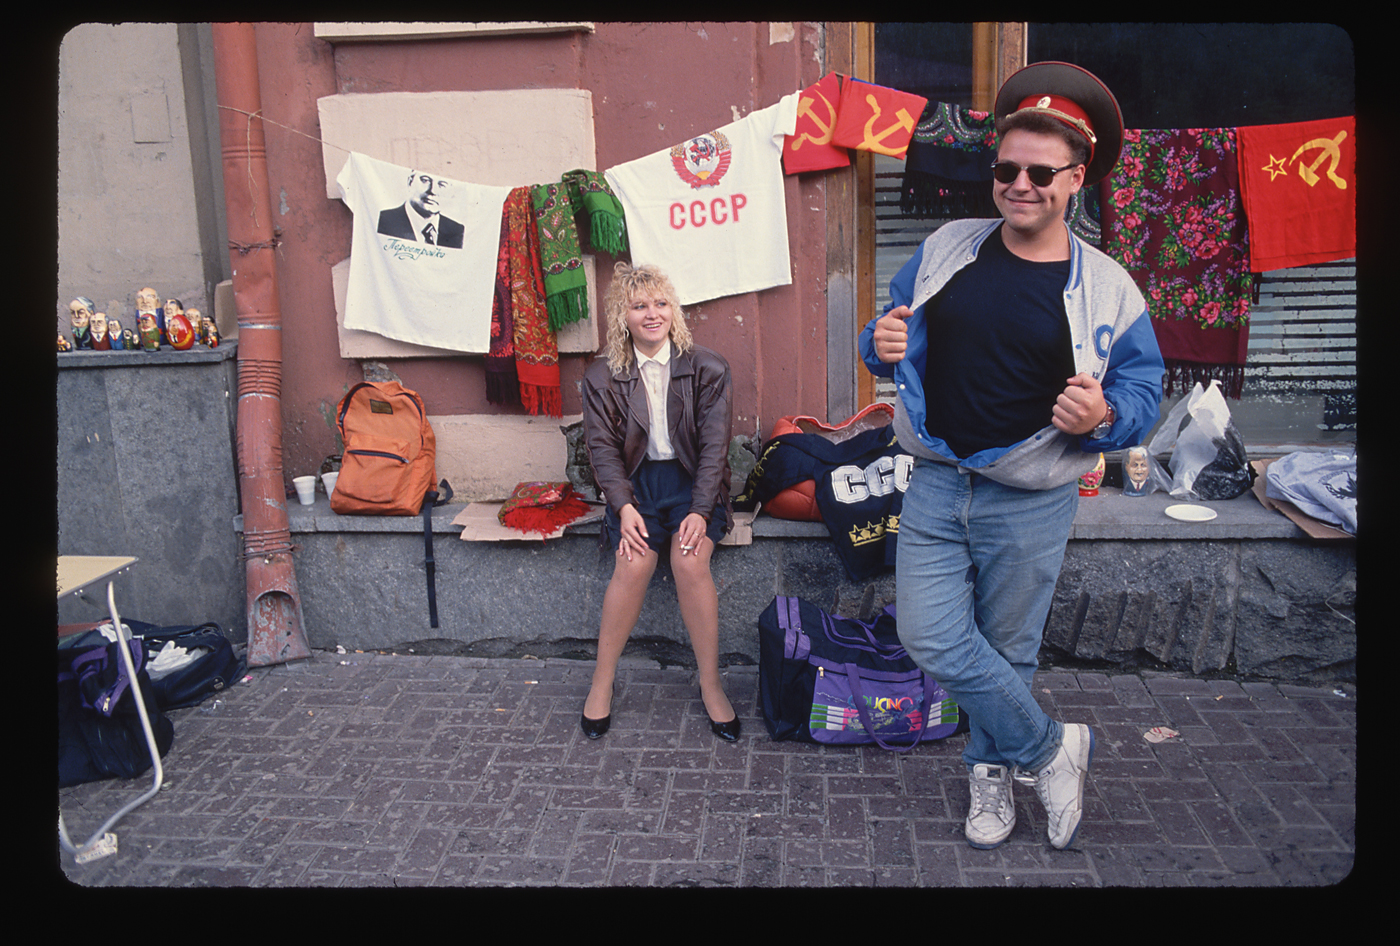 A woman and man in western style clothing near a collection of Soviet and Russian souvenirs on Arbat street, Moscow in 1991. Souvenir items include t-shirts displaying CCCP and photo of Mikhail Gorbachev.